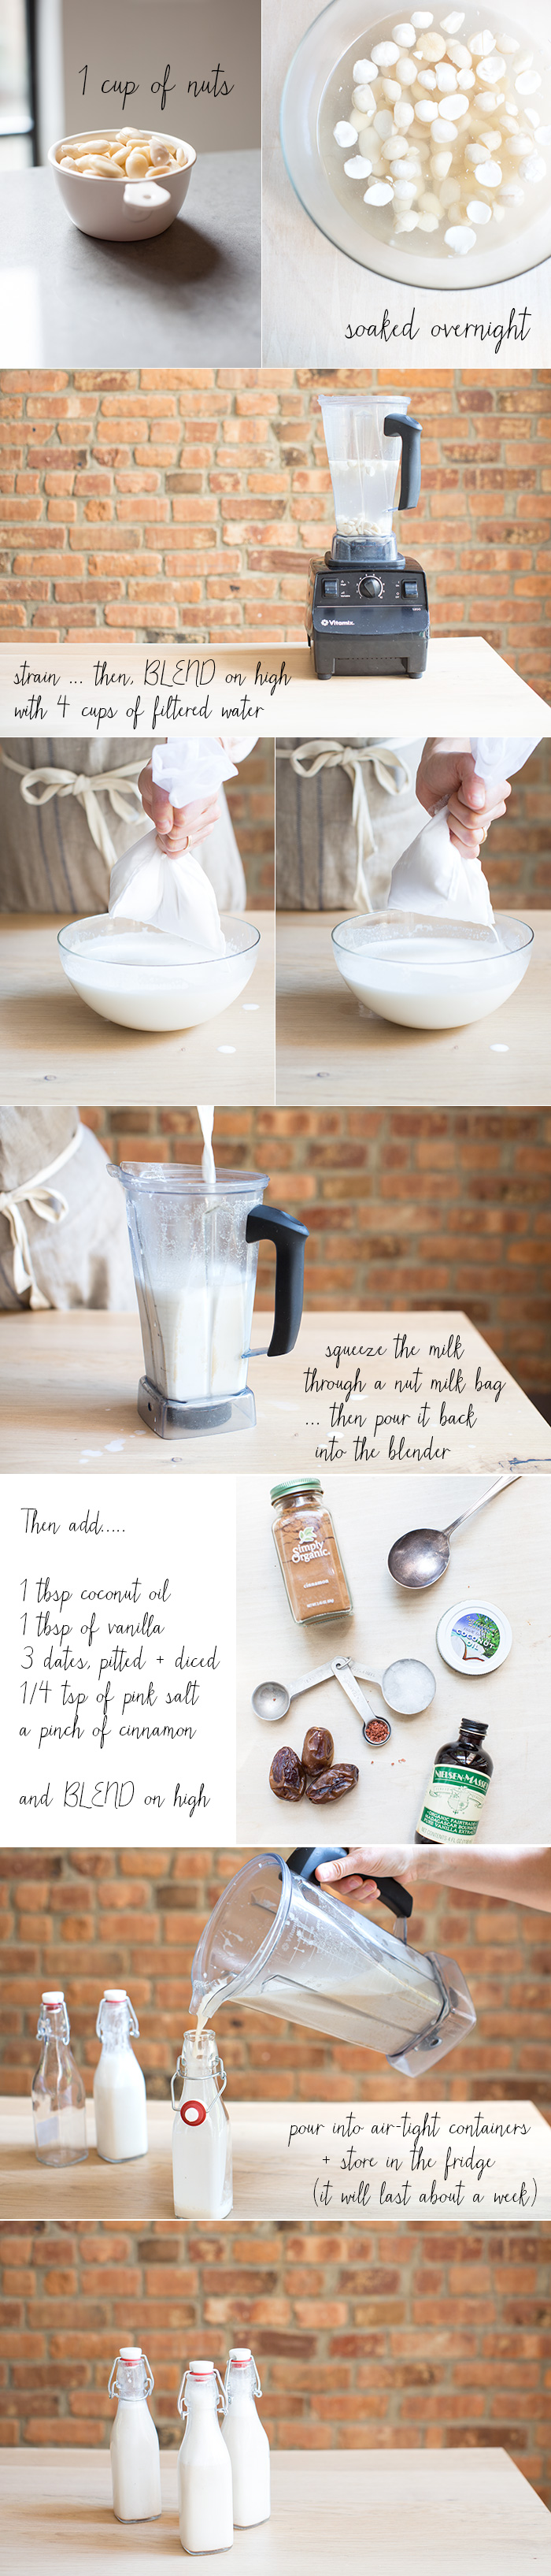 how to make the most delicious nut milk   a step by step guide with pictures! …… via: what's cooking good looking